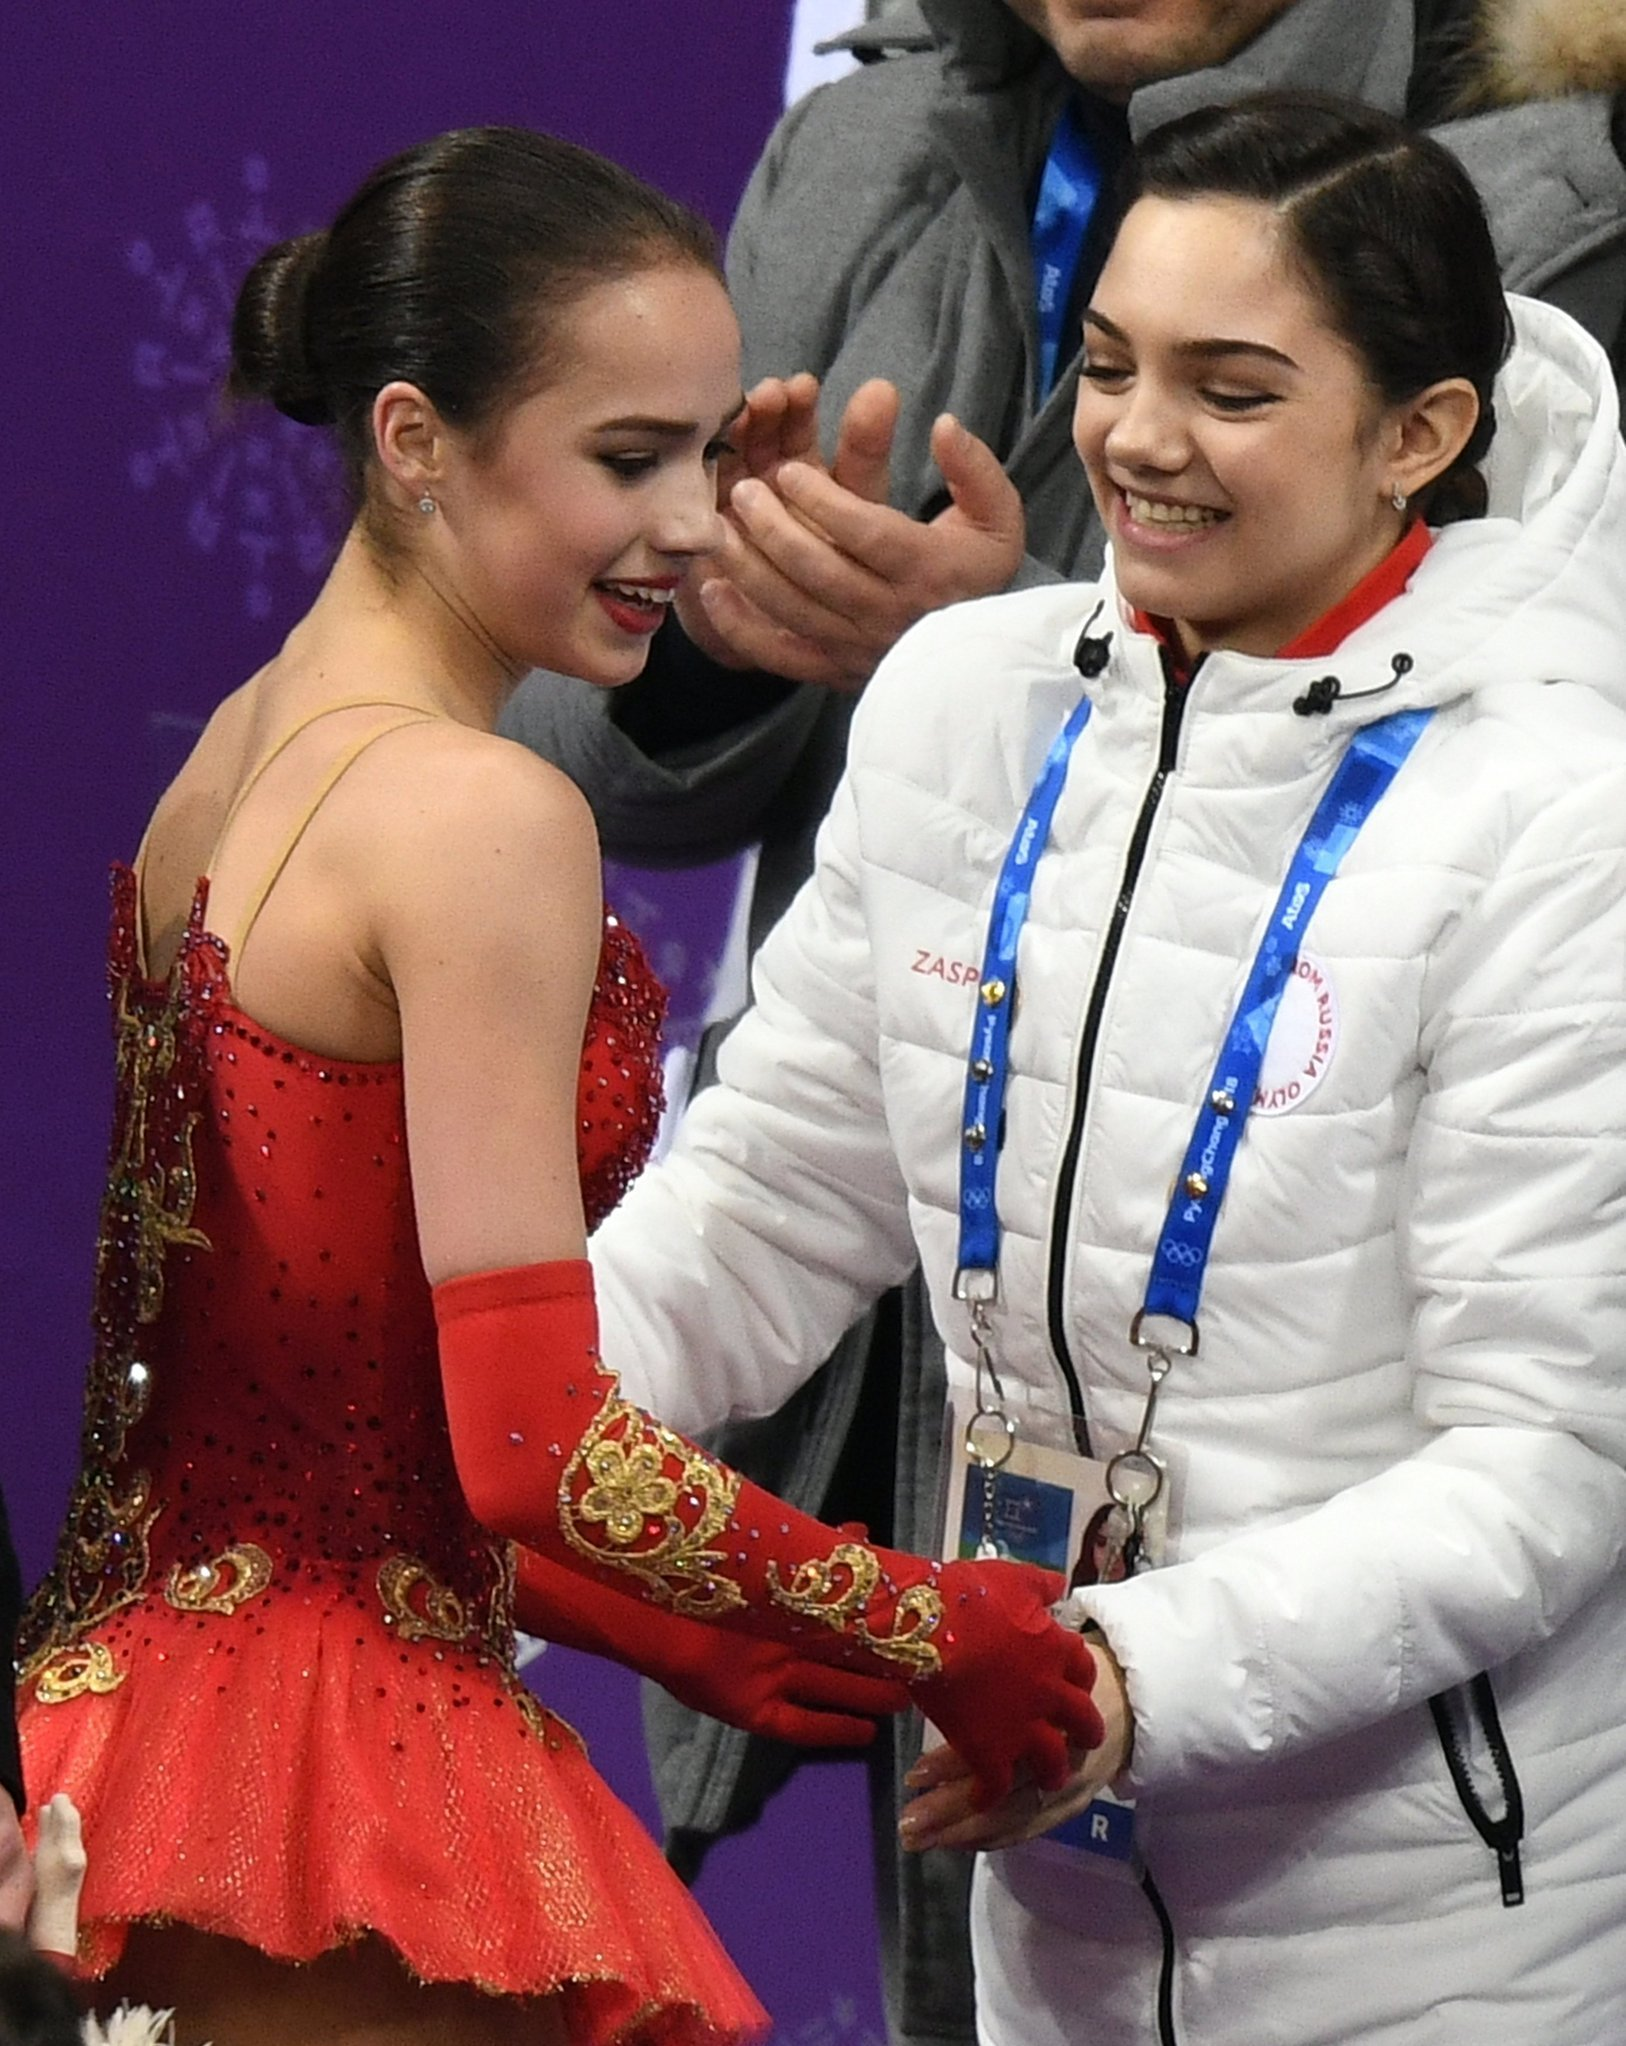 Olympic Athlete from Russia Alina Zagitova, left, after performing her free program during the women's team figure skating competition at the XXIII Olympic Winter Games in Pyeongchang. Right: Russian figure skater Evgenia Medvedeva